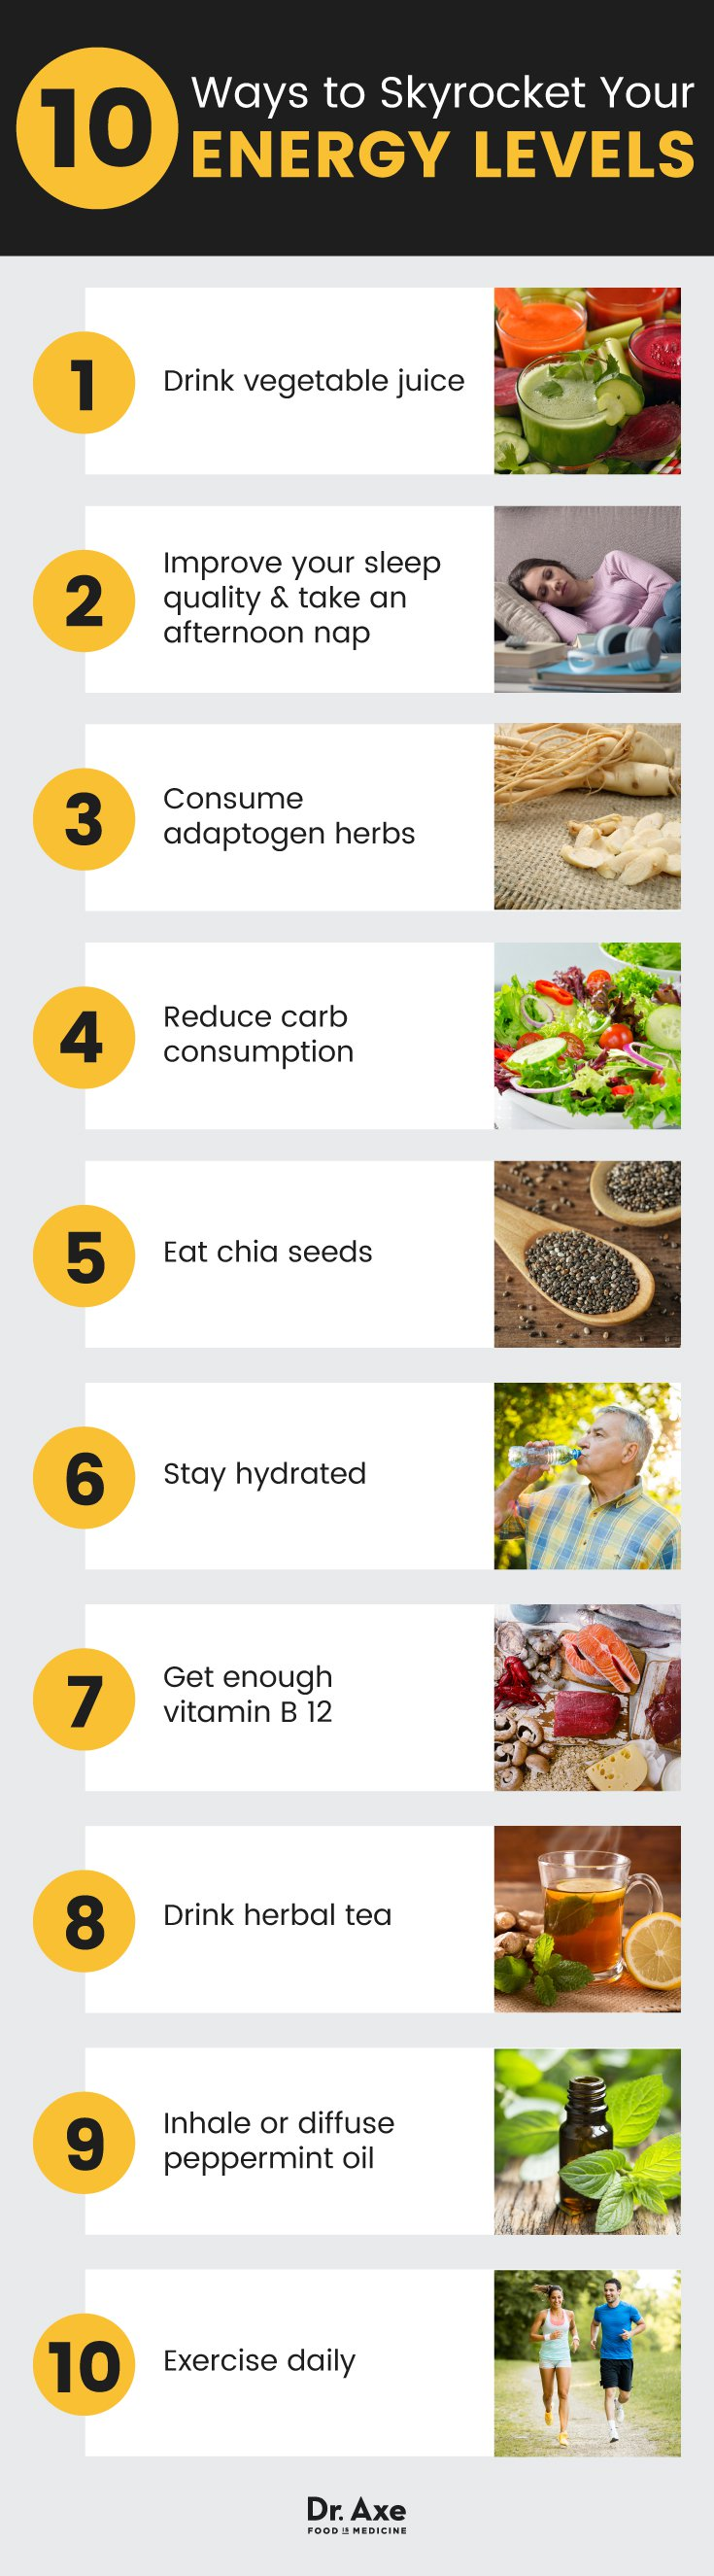 Ways to boost your energy levels